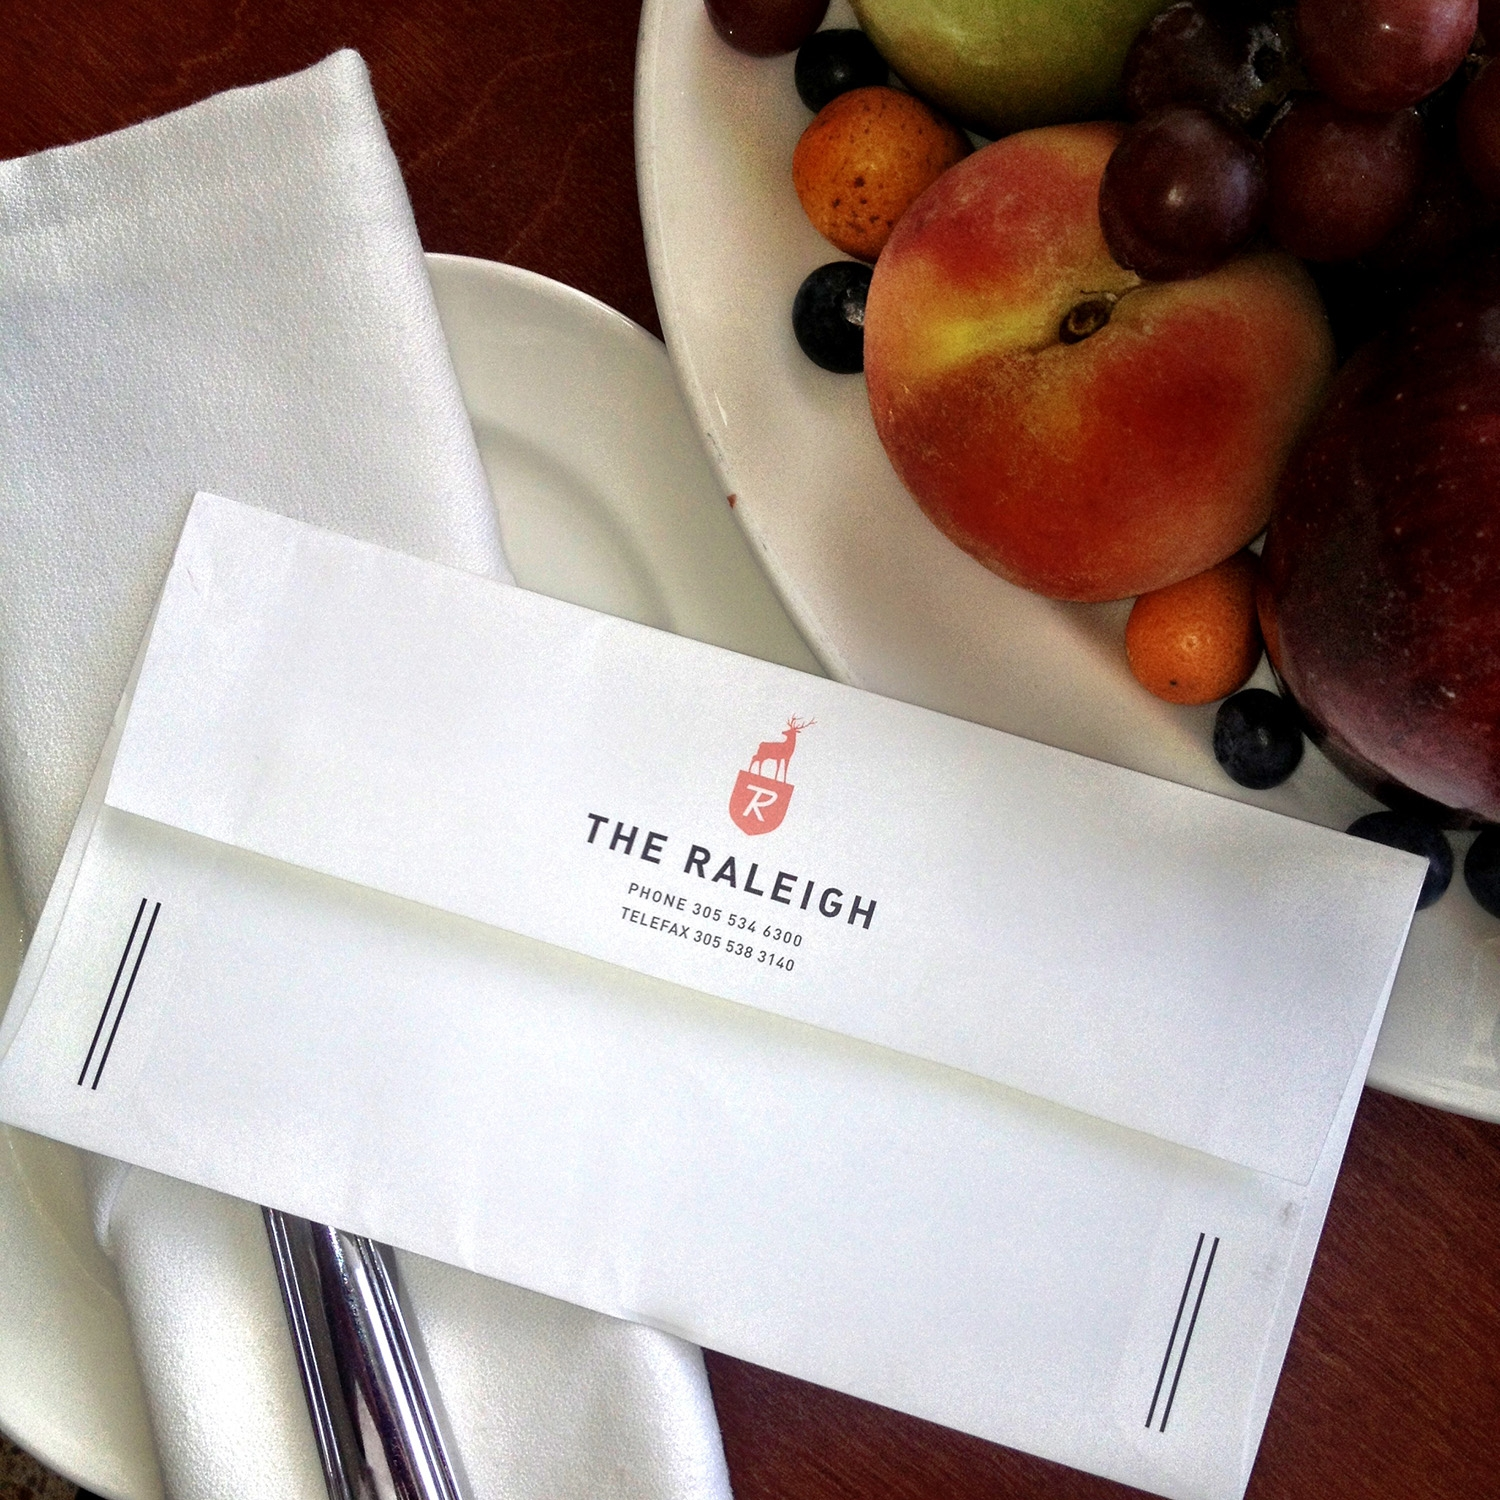 A branded 'The Raleigh' envelope sits next to a fruit bowl